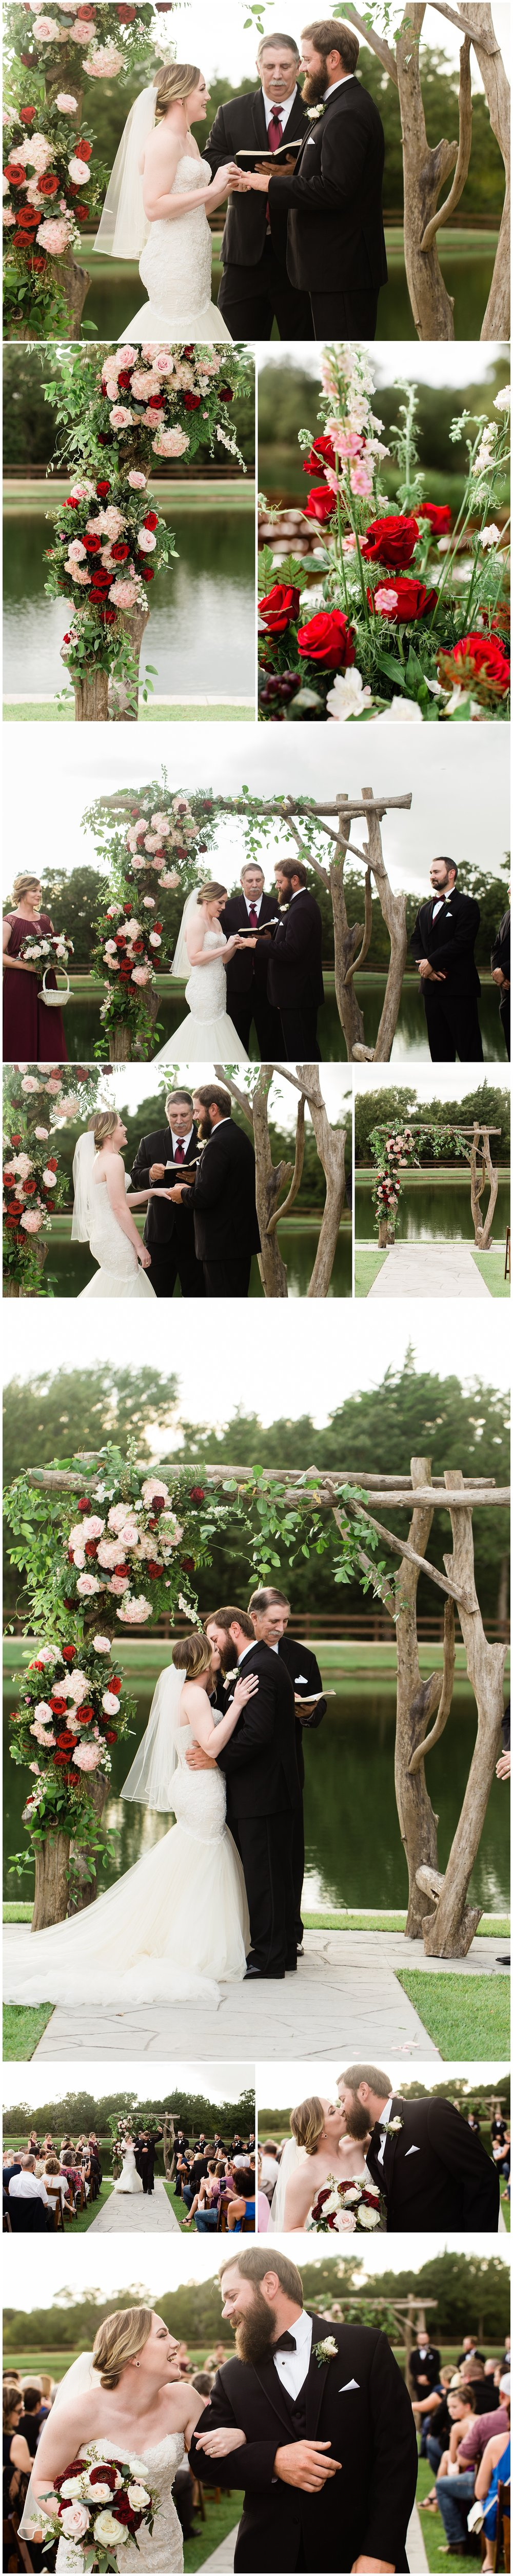 Peach_Creek_Ranch_Wedding_Kristina_Ross_Photography_0017.jpg